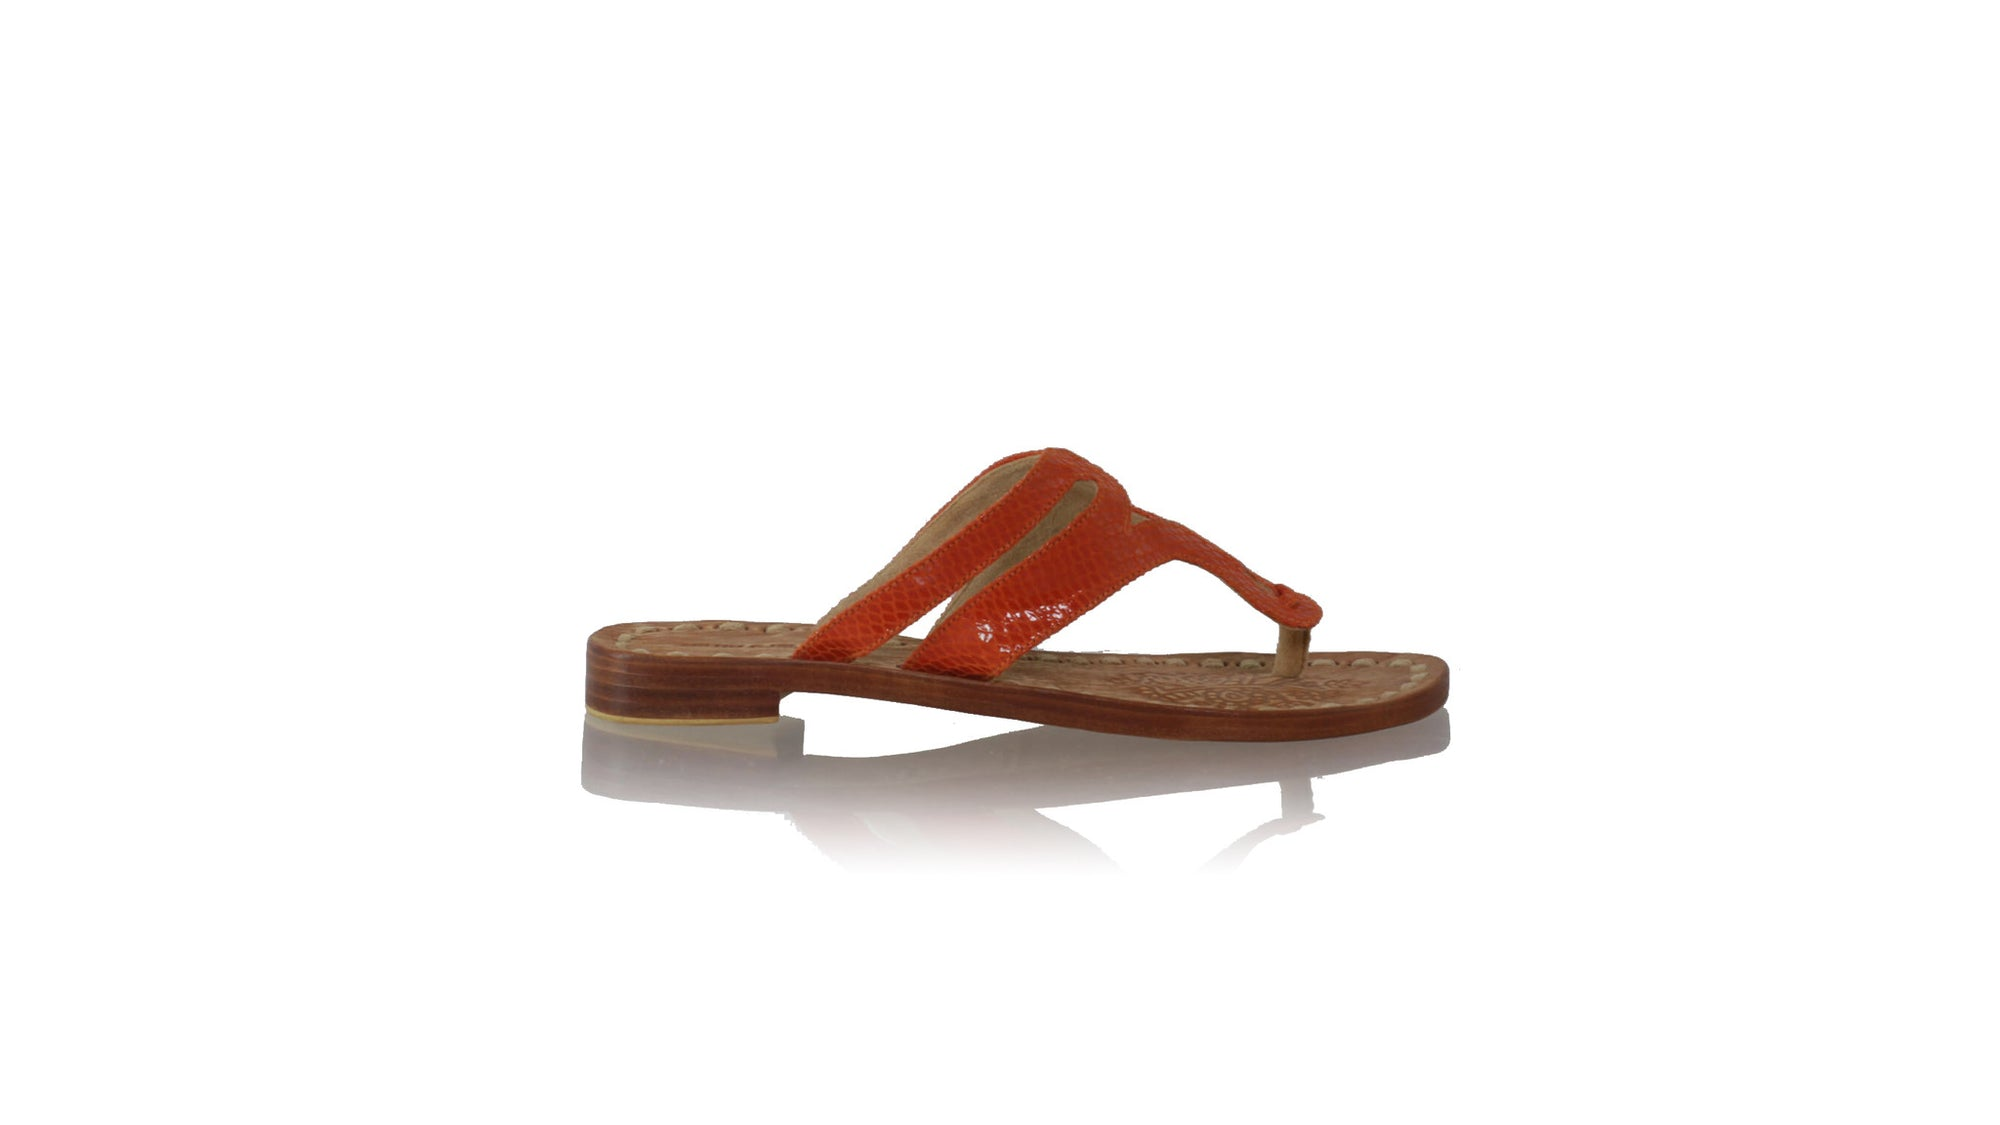 Leather-shoes-Arrah 20mm Flat - Orange Snake Print-sandals flat-NILUH DJELANTIK-NILUH DJELANTIK